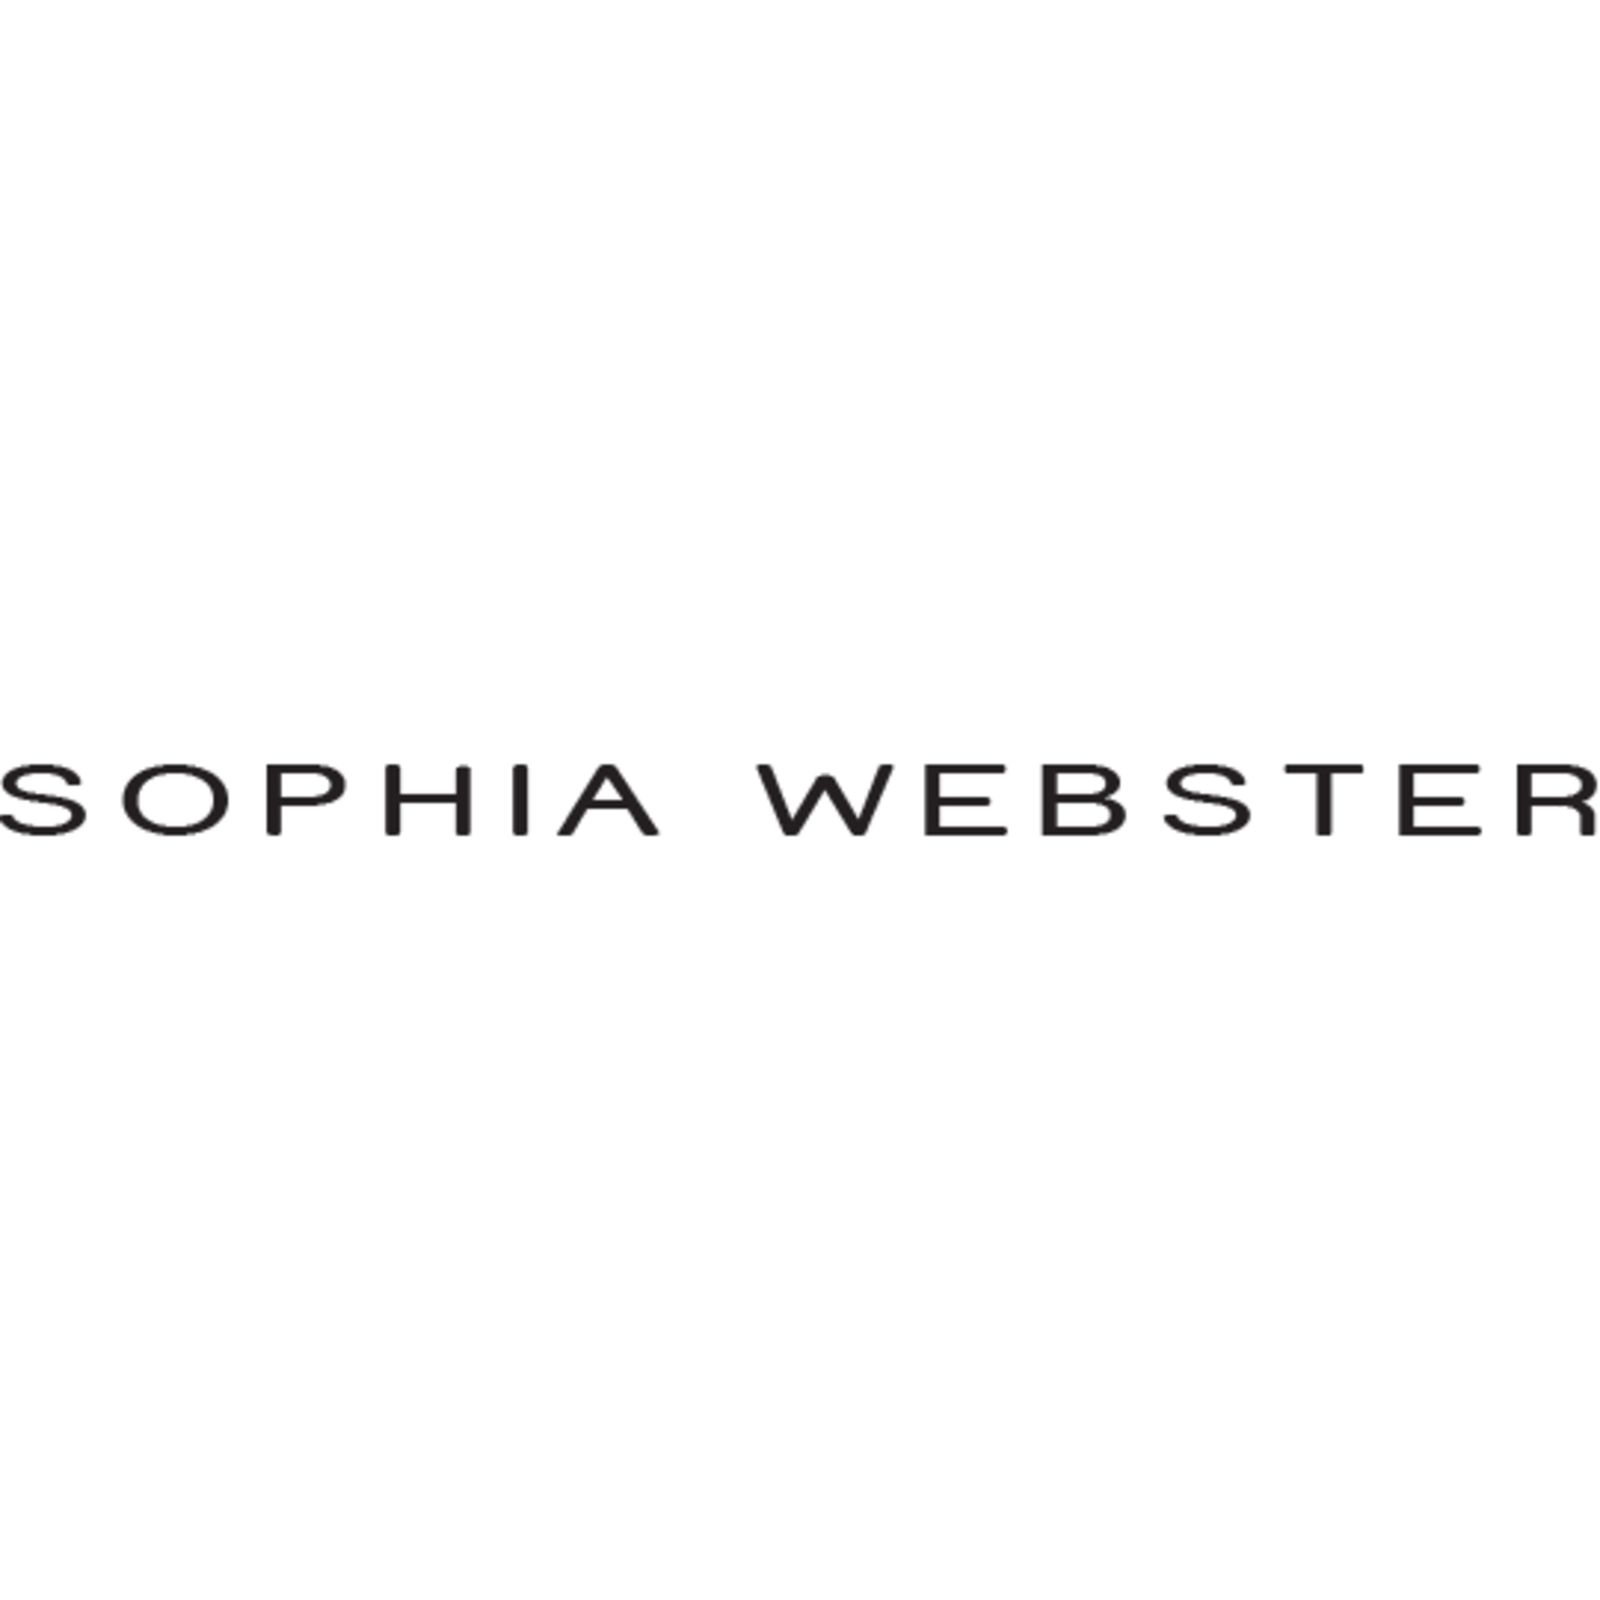 SOPHIA WEBSTER